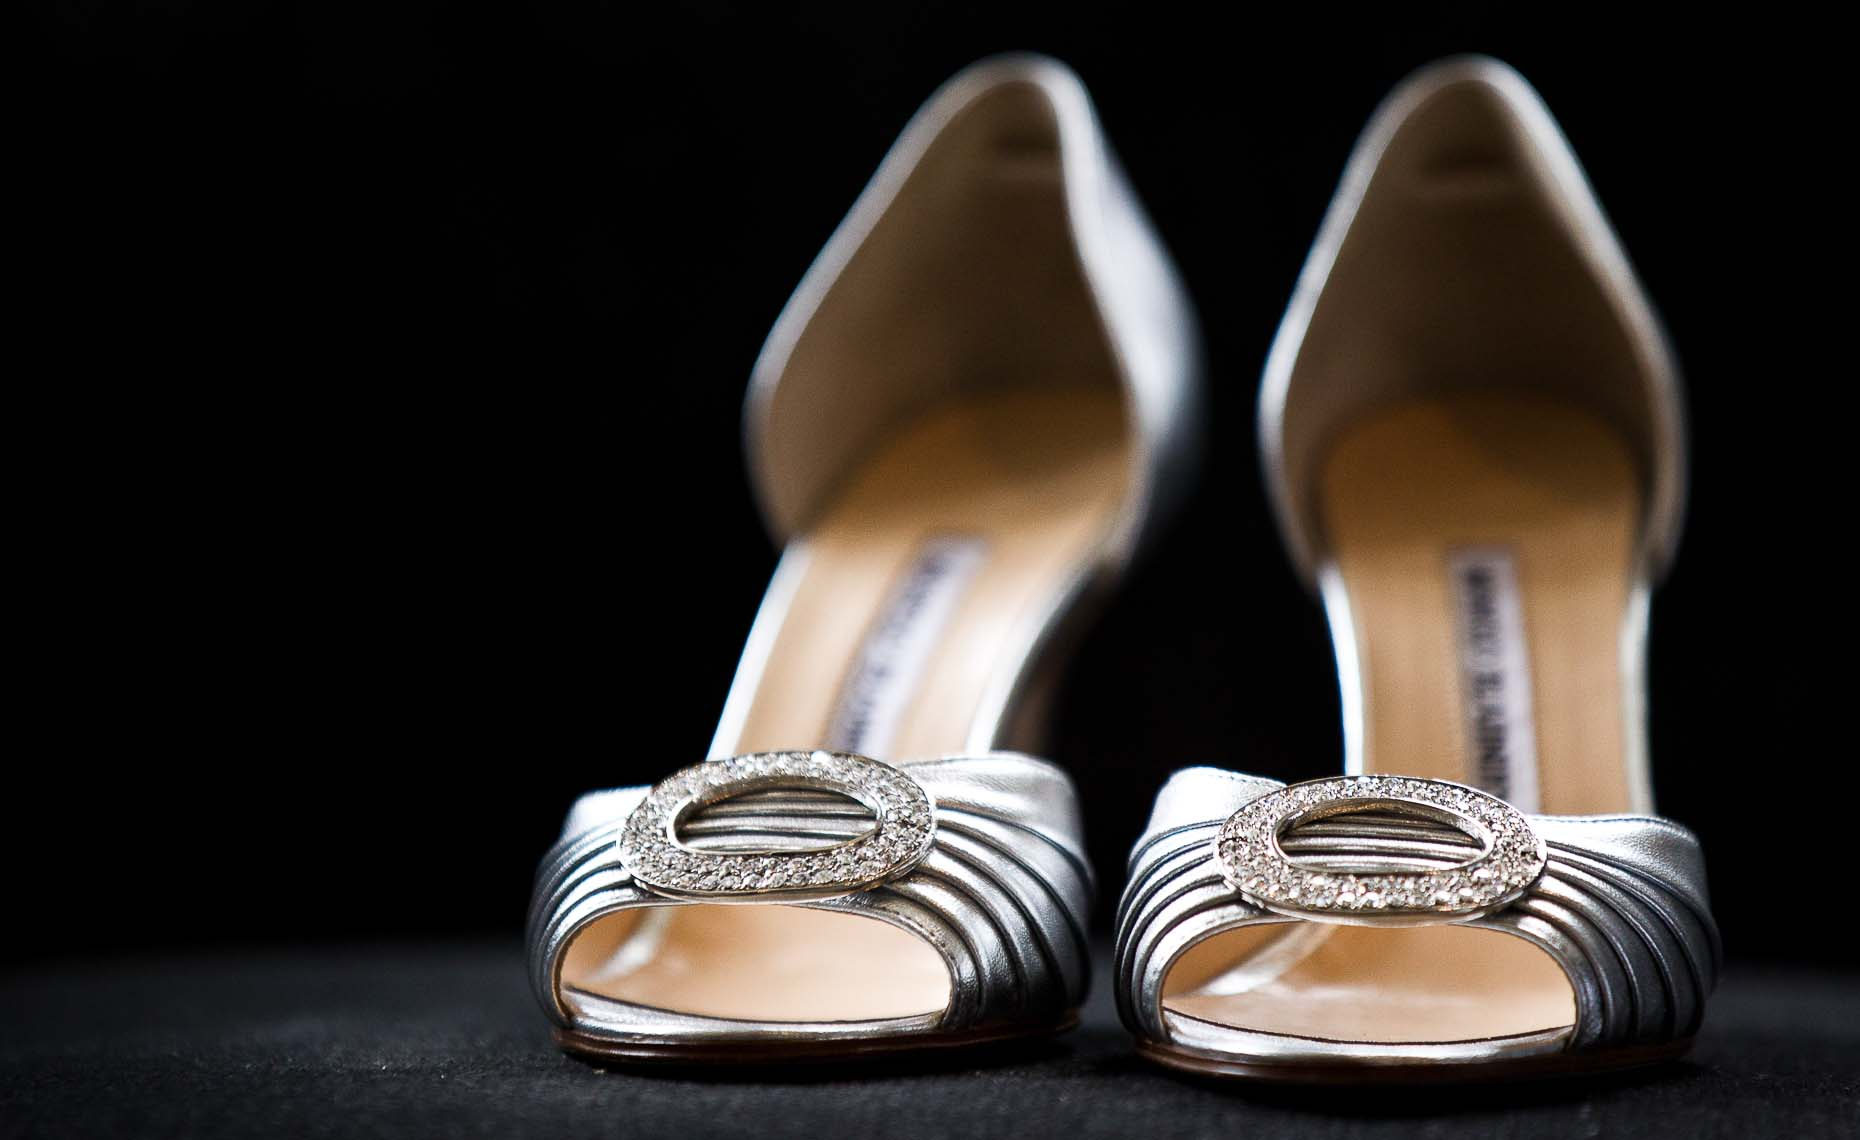 Wedding detail closeup photography of shoes